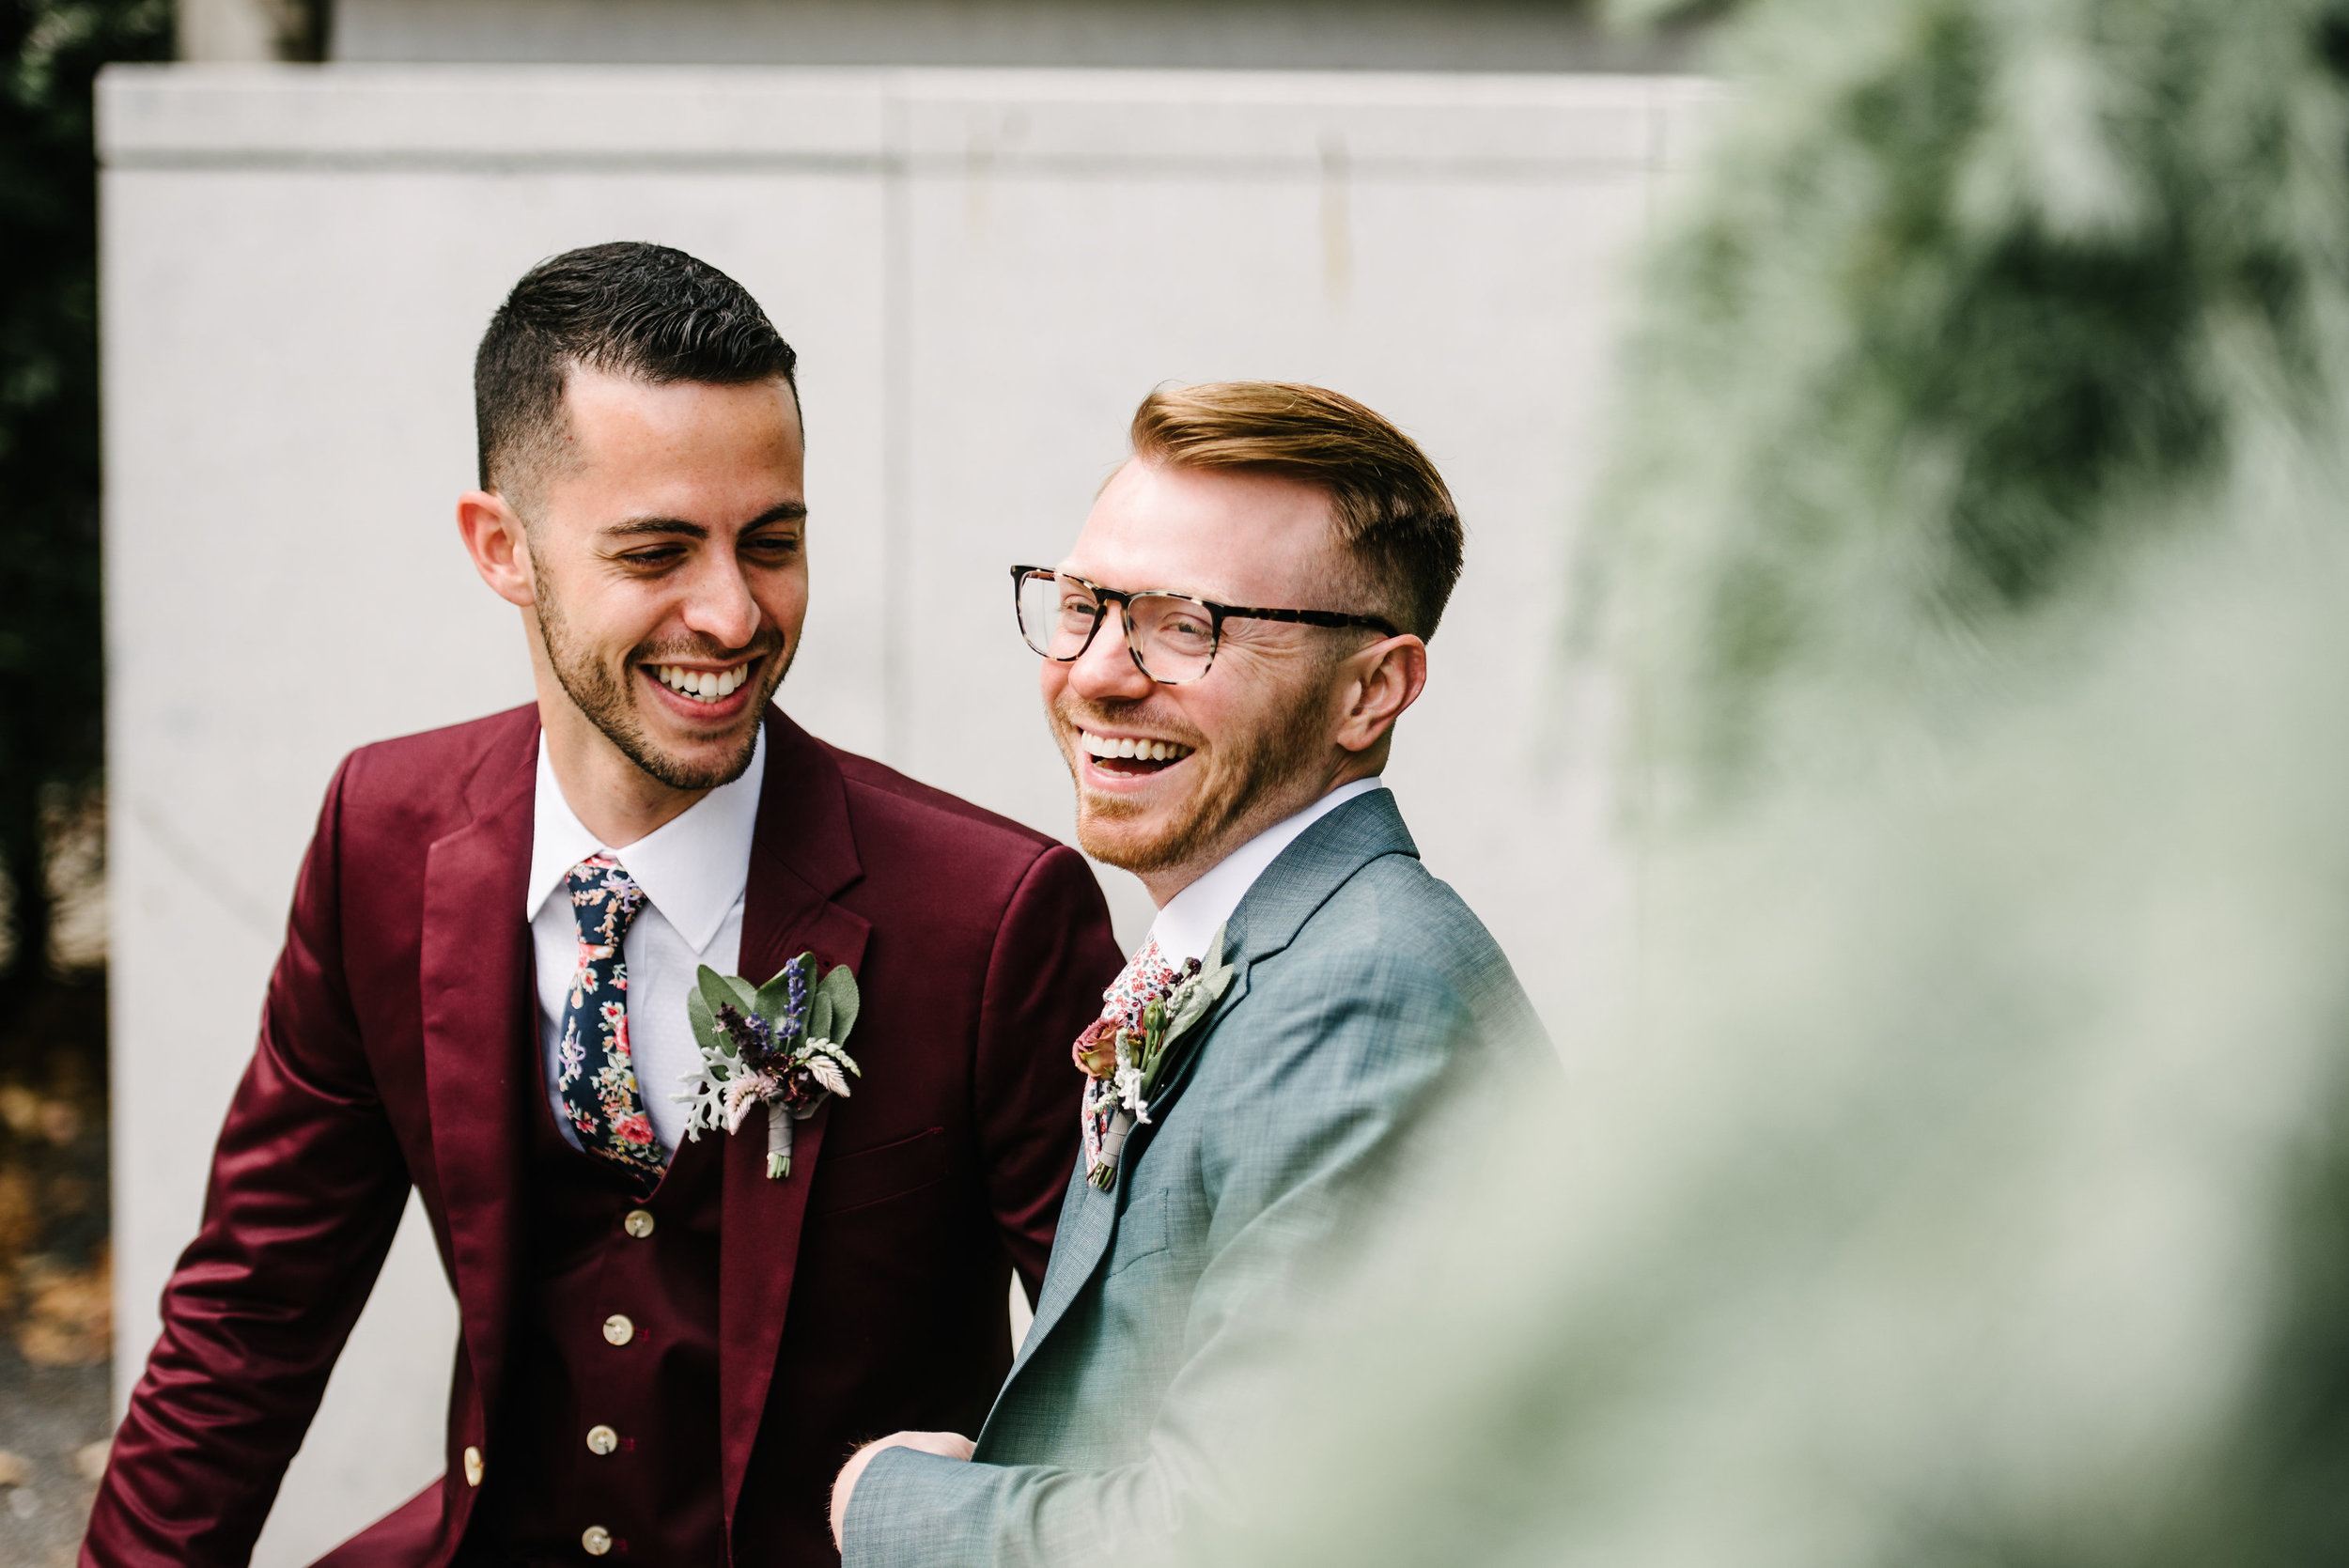 Groom style with Indochino suits for a Philadelphia wedding with wedding planner Heart & Dash and photos by AGP Collective